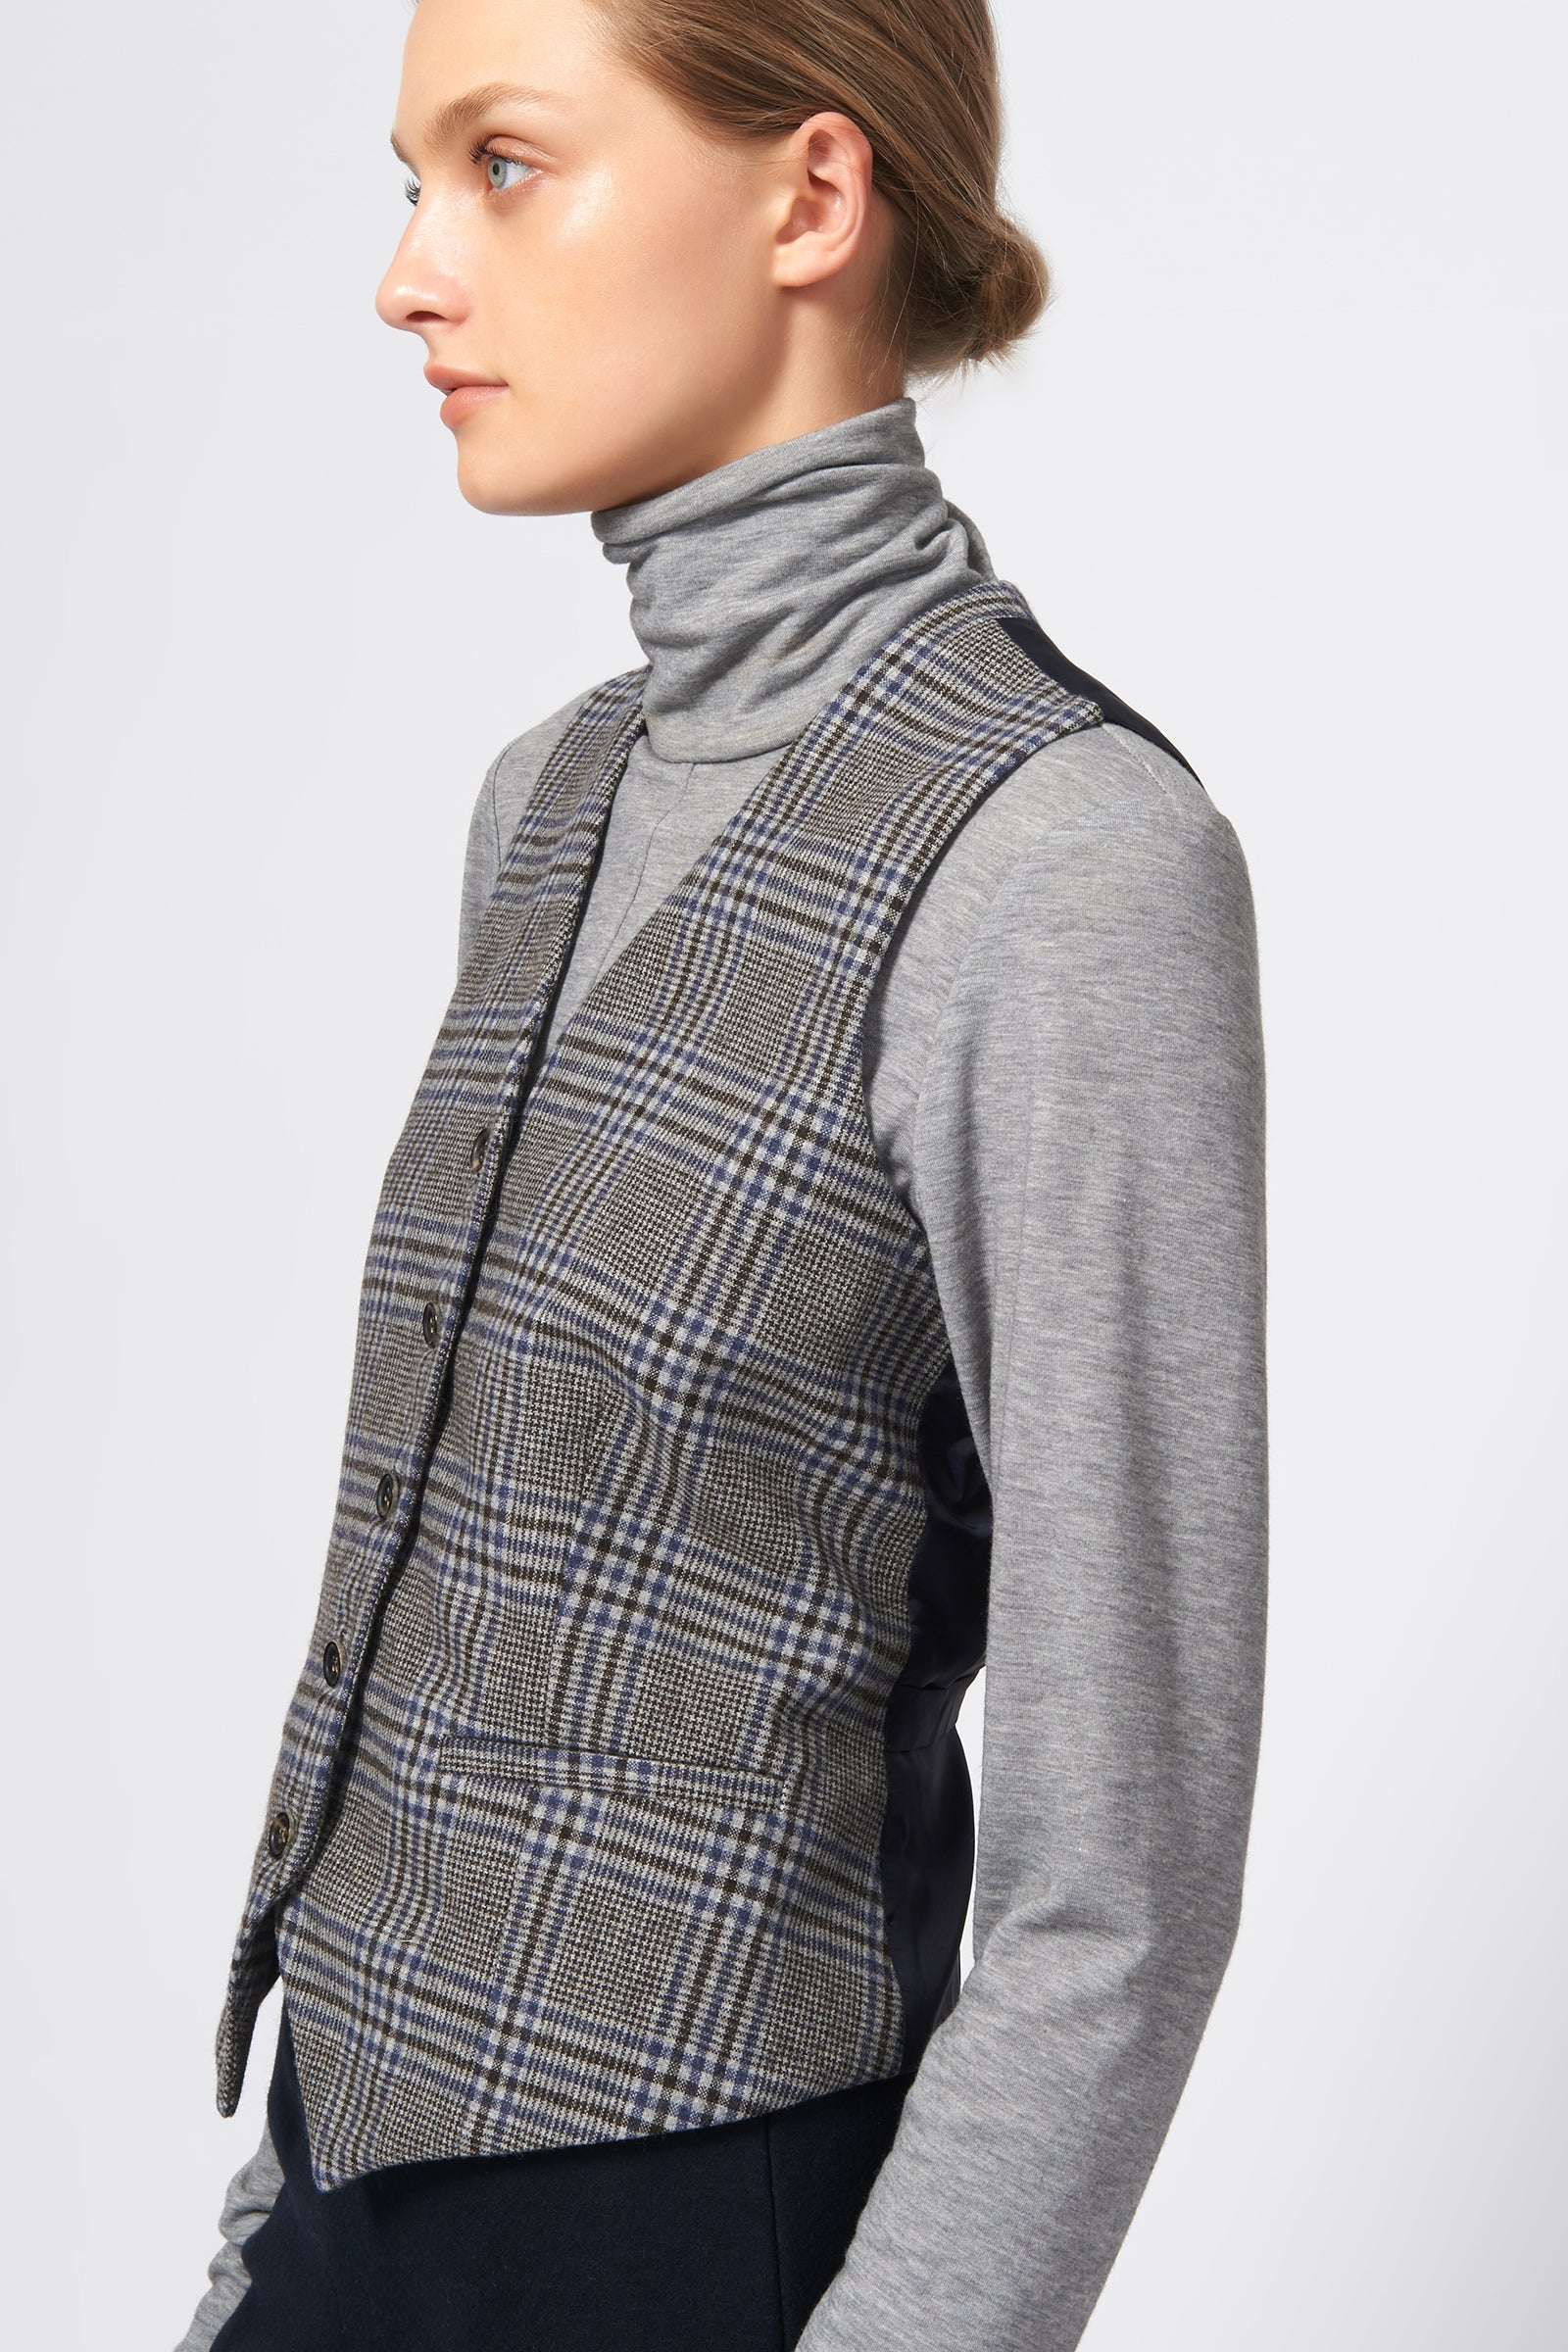 Kal Rieman Classic Tailored Vest in Grey Plaid on Model Side View